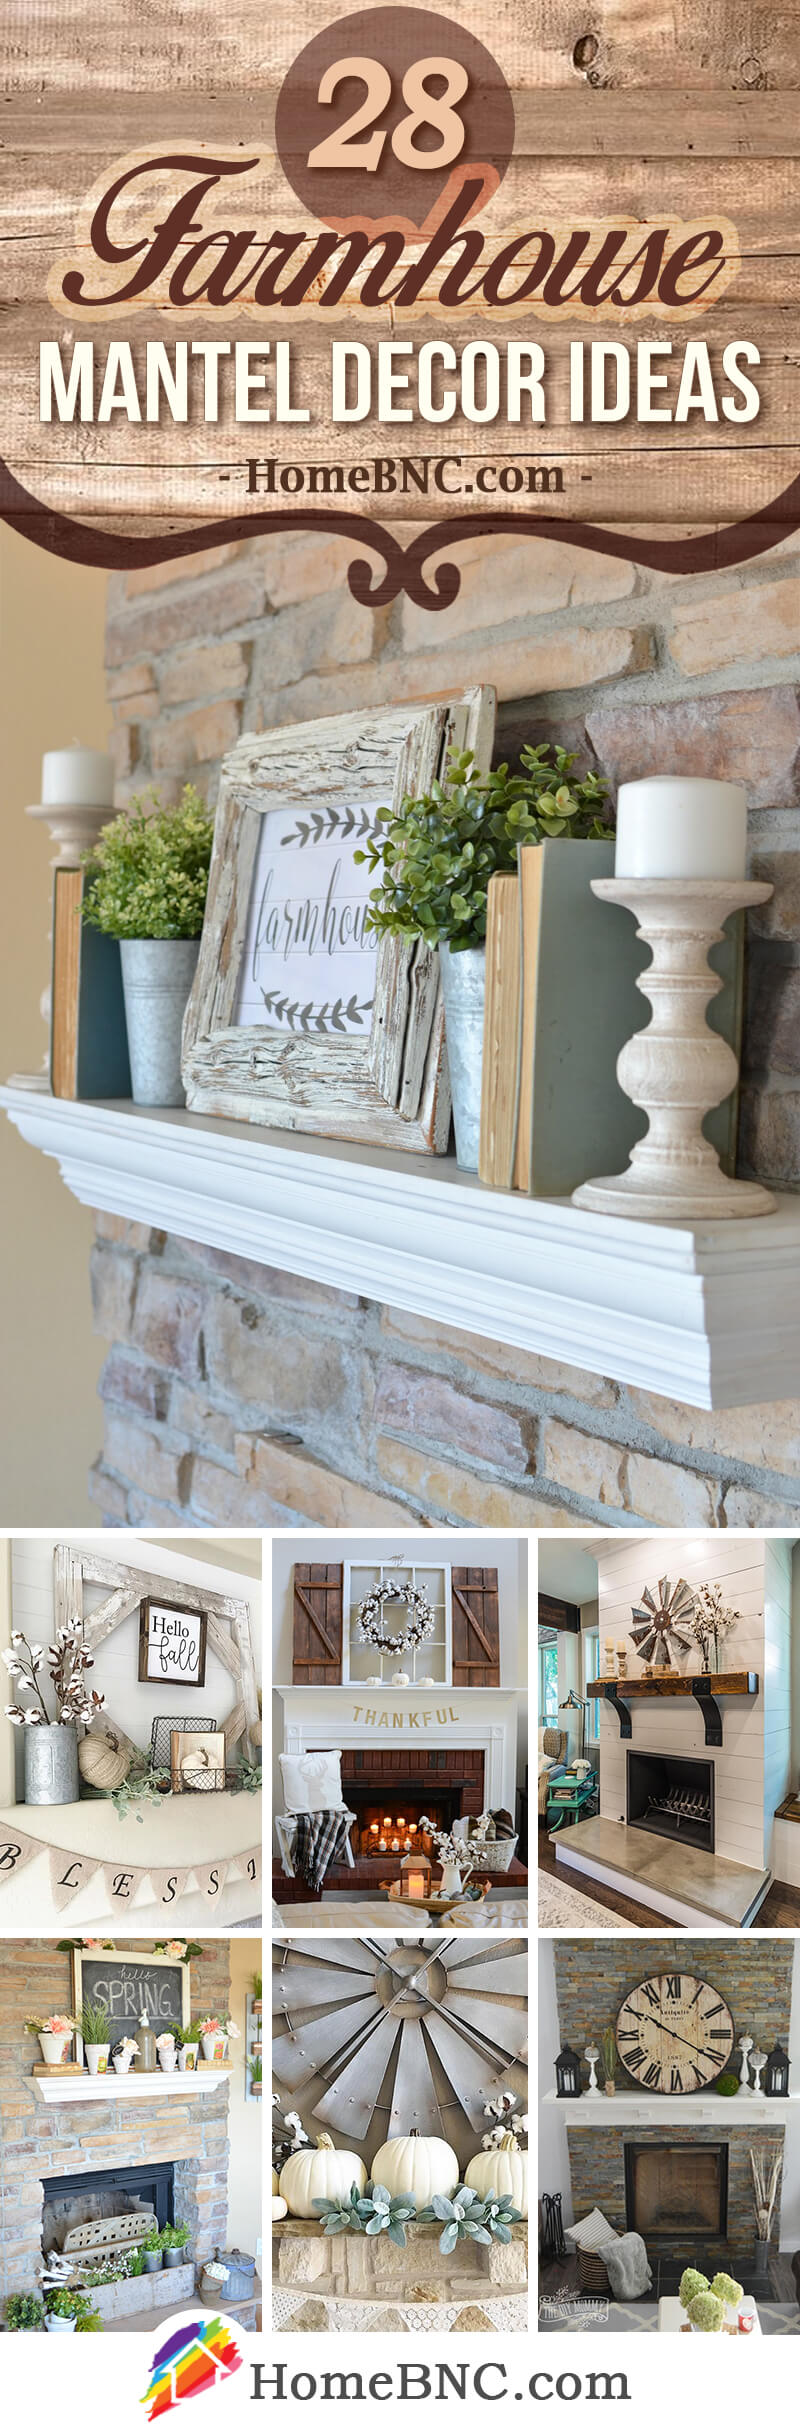 Clock Over Fireplace 28 Best Farmhouse Mantel Decor Ideas And Designs For 2019